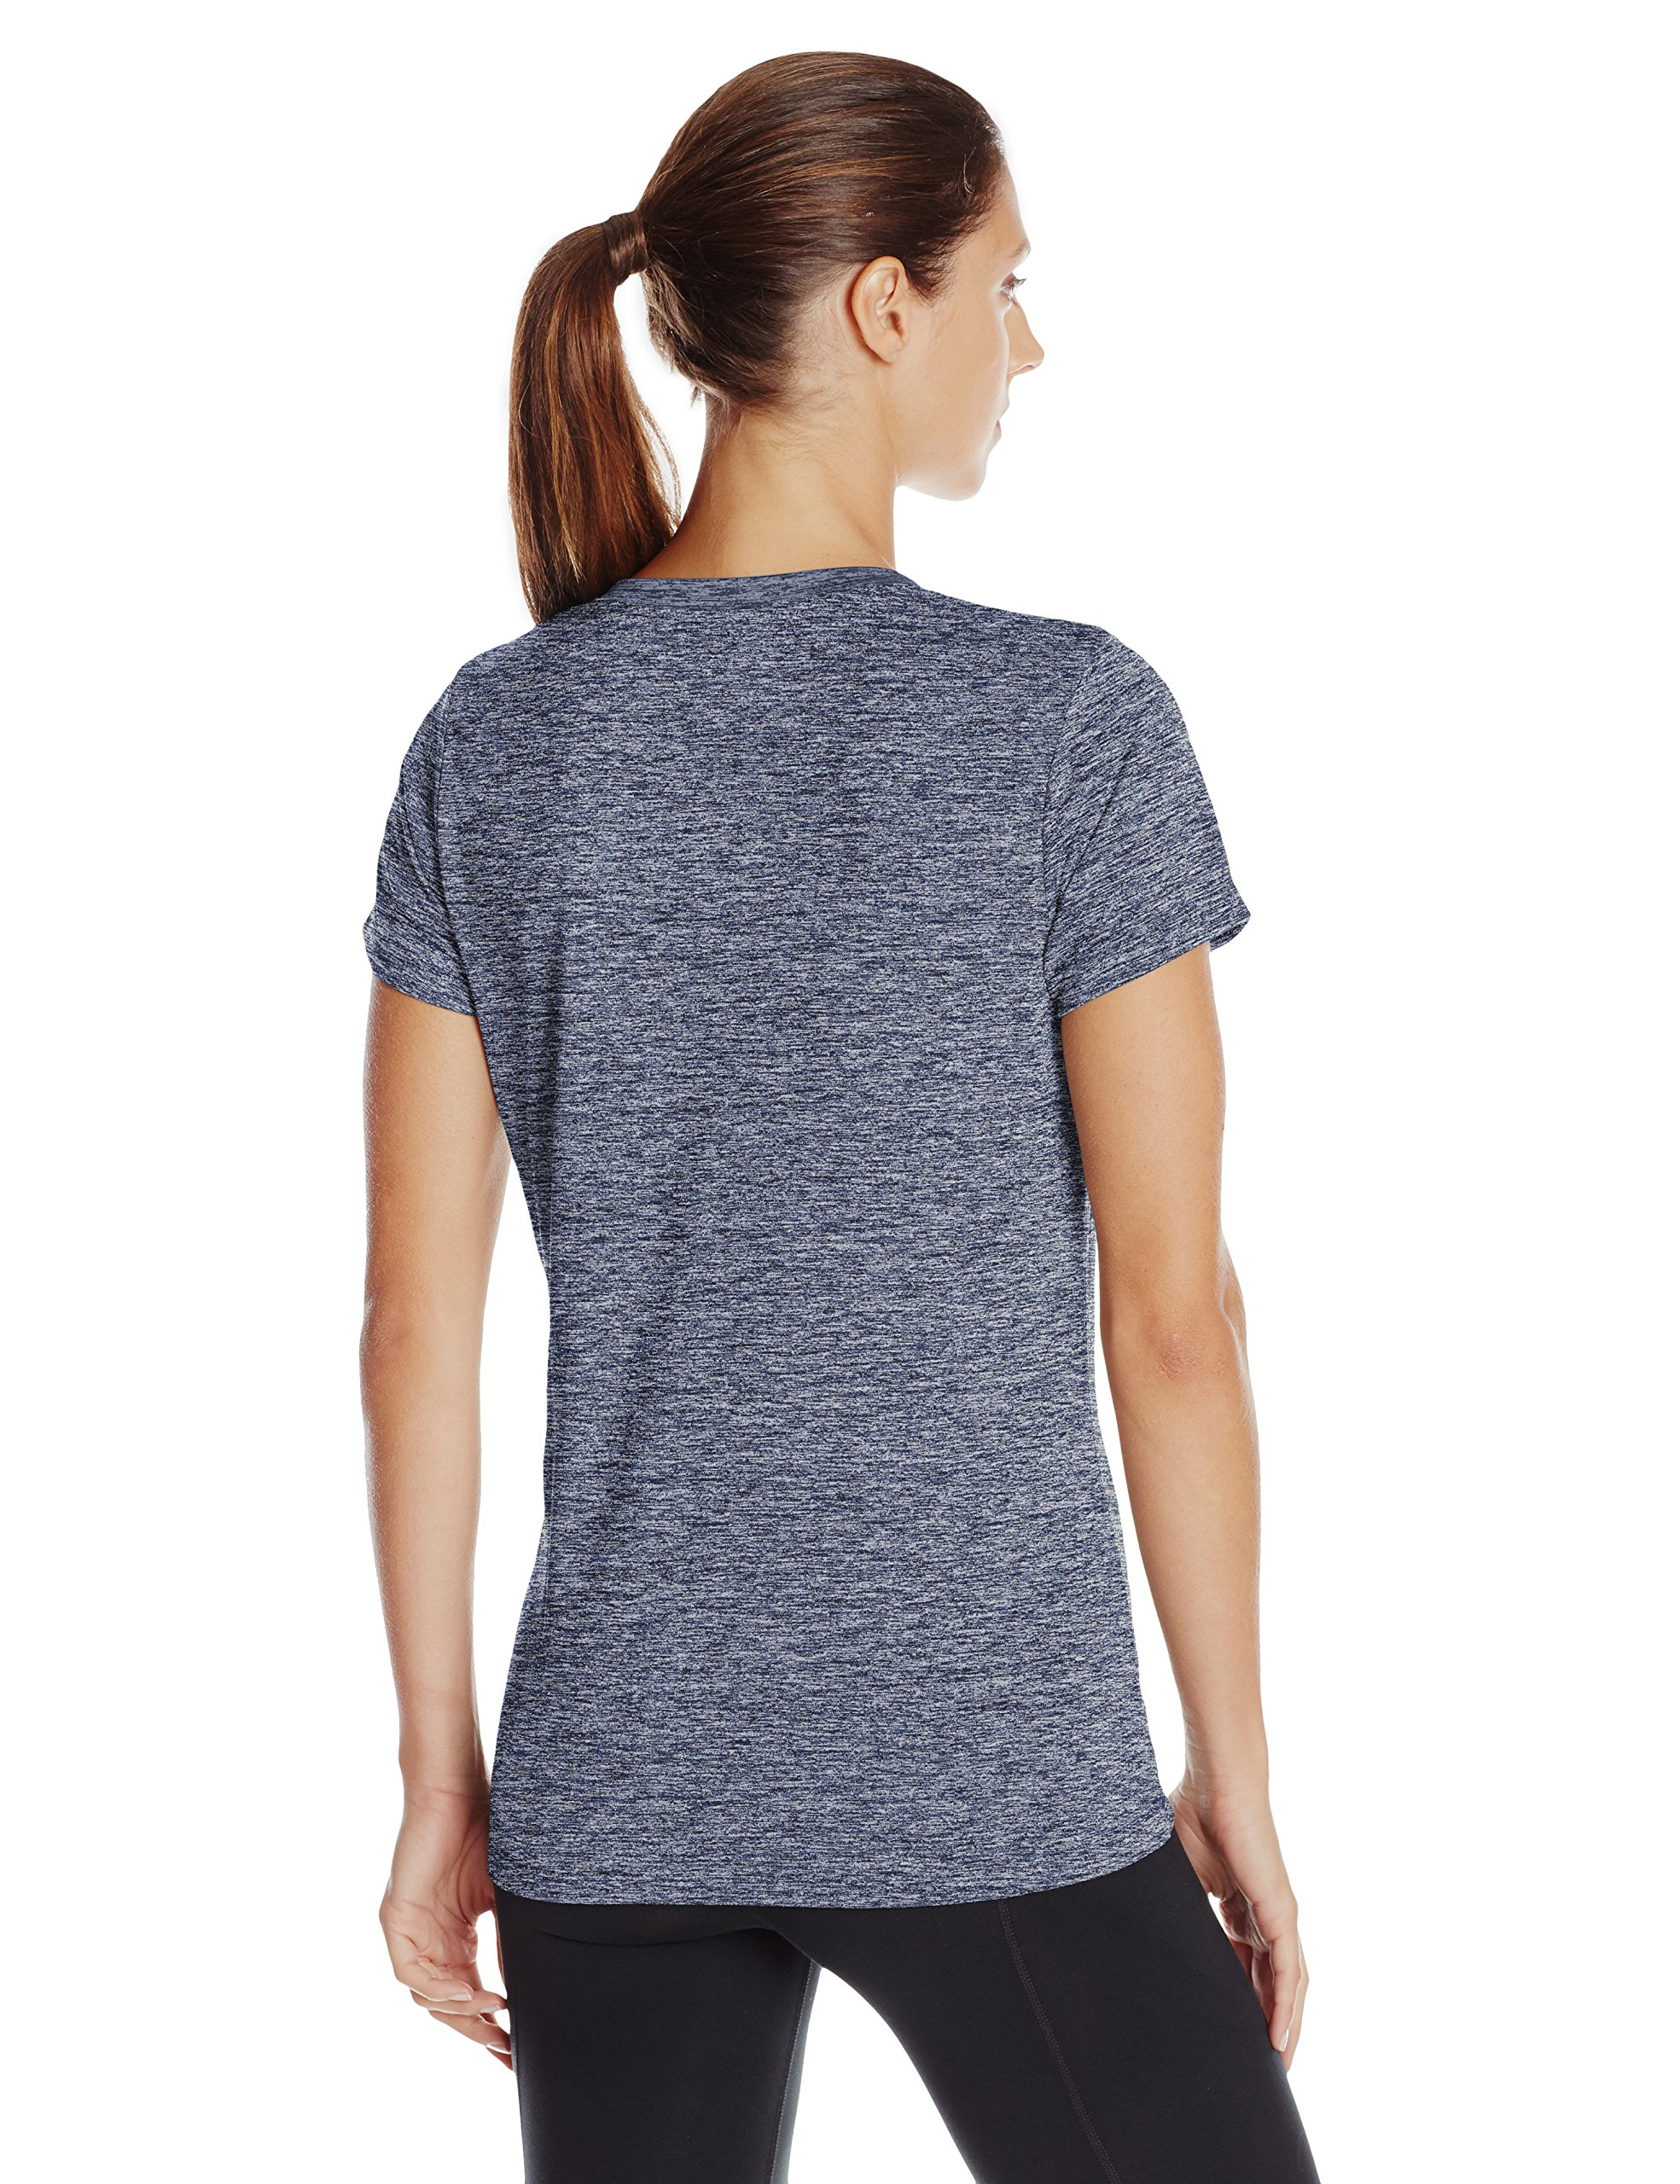 Under Armour Women's Tech V-Neck Twist Top, Academy (408)/Metallic Silver, Small by Under Armour (Image #2)